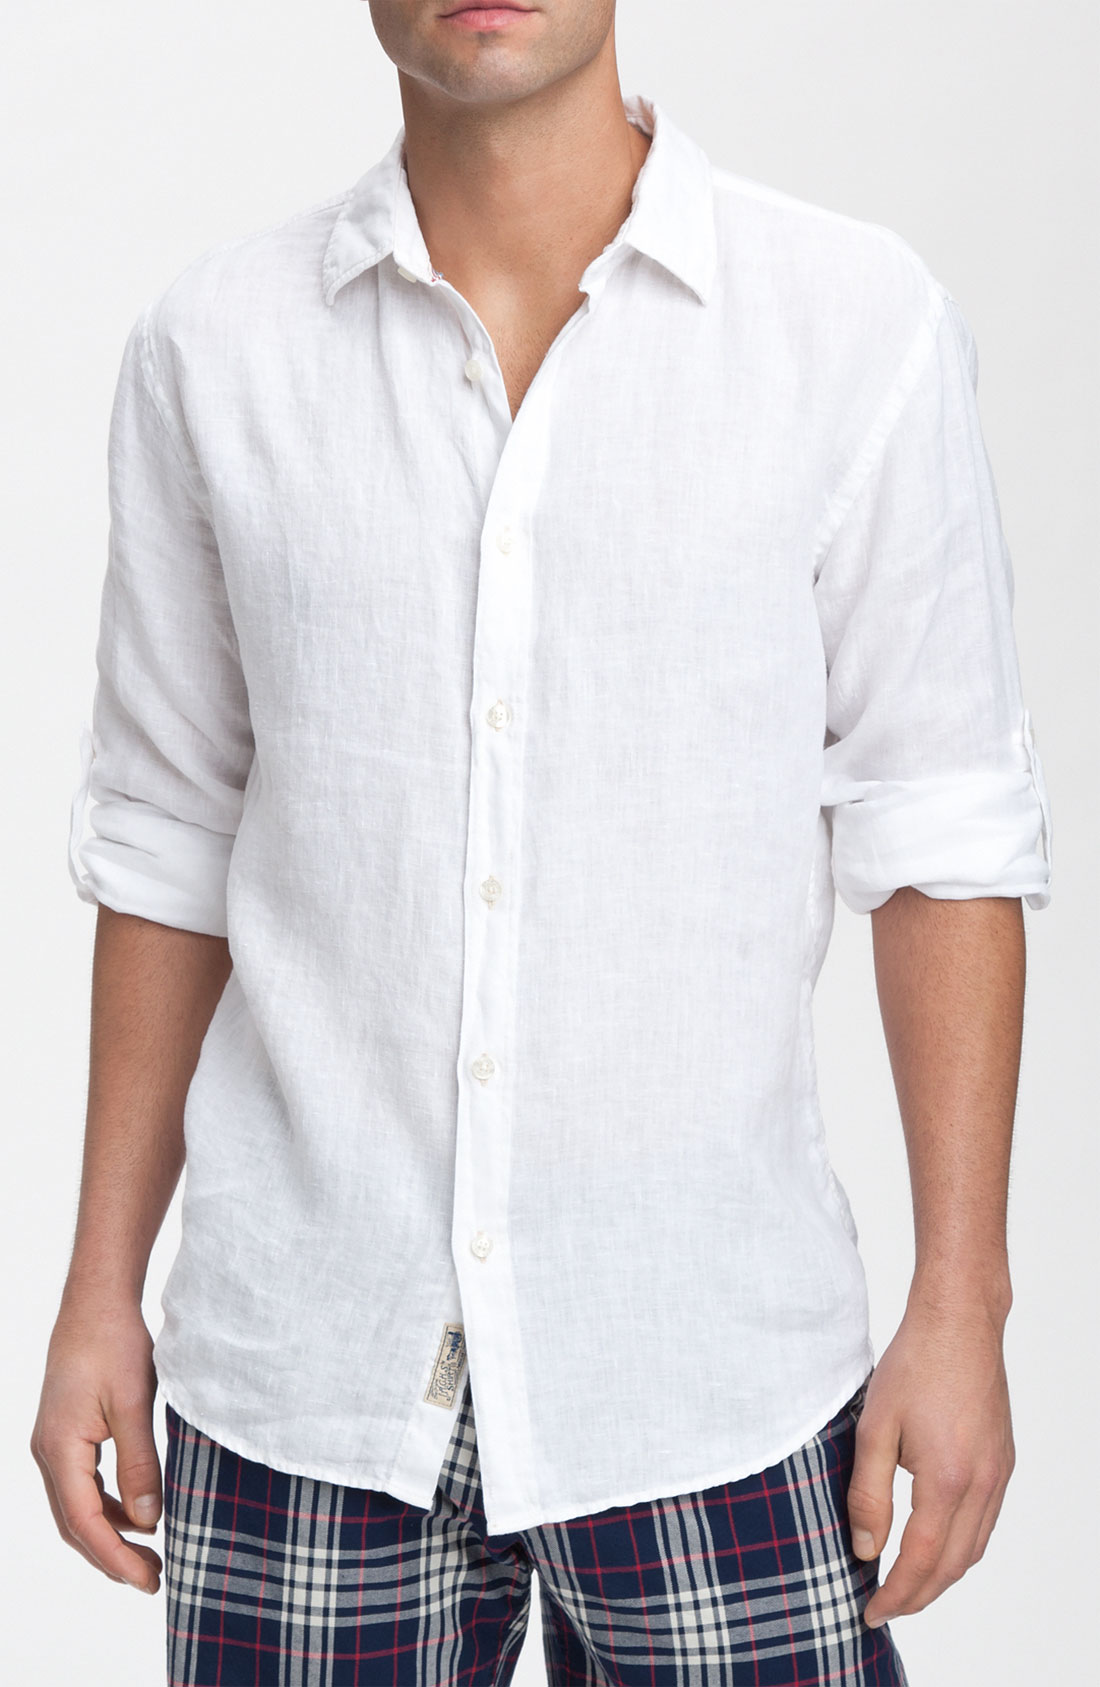 Find great deals on eBay for mens long sleeve linen shirt. Shop with confidence.